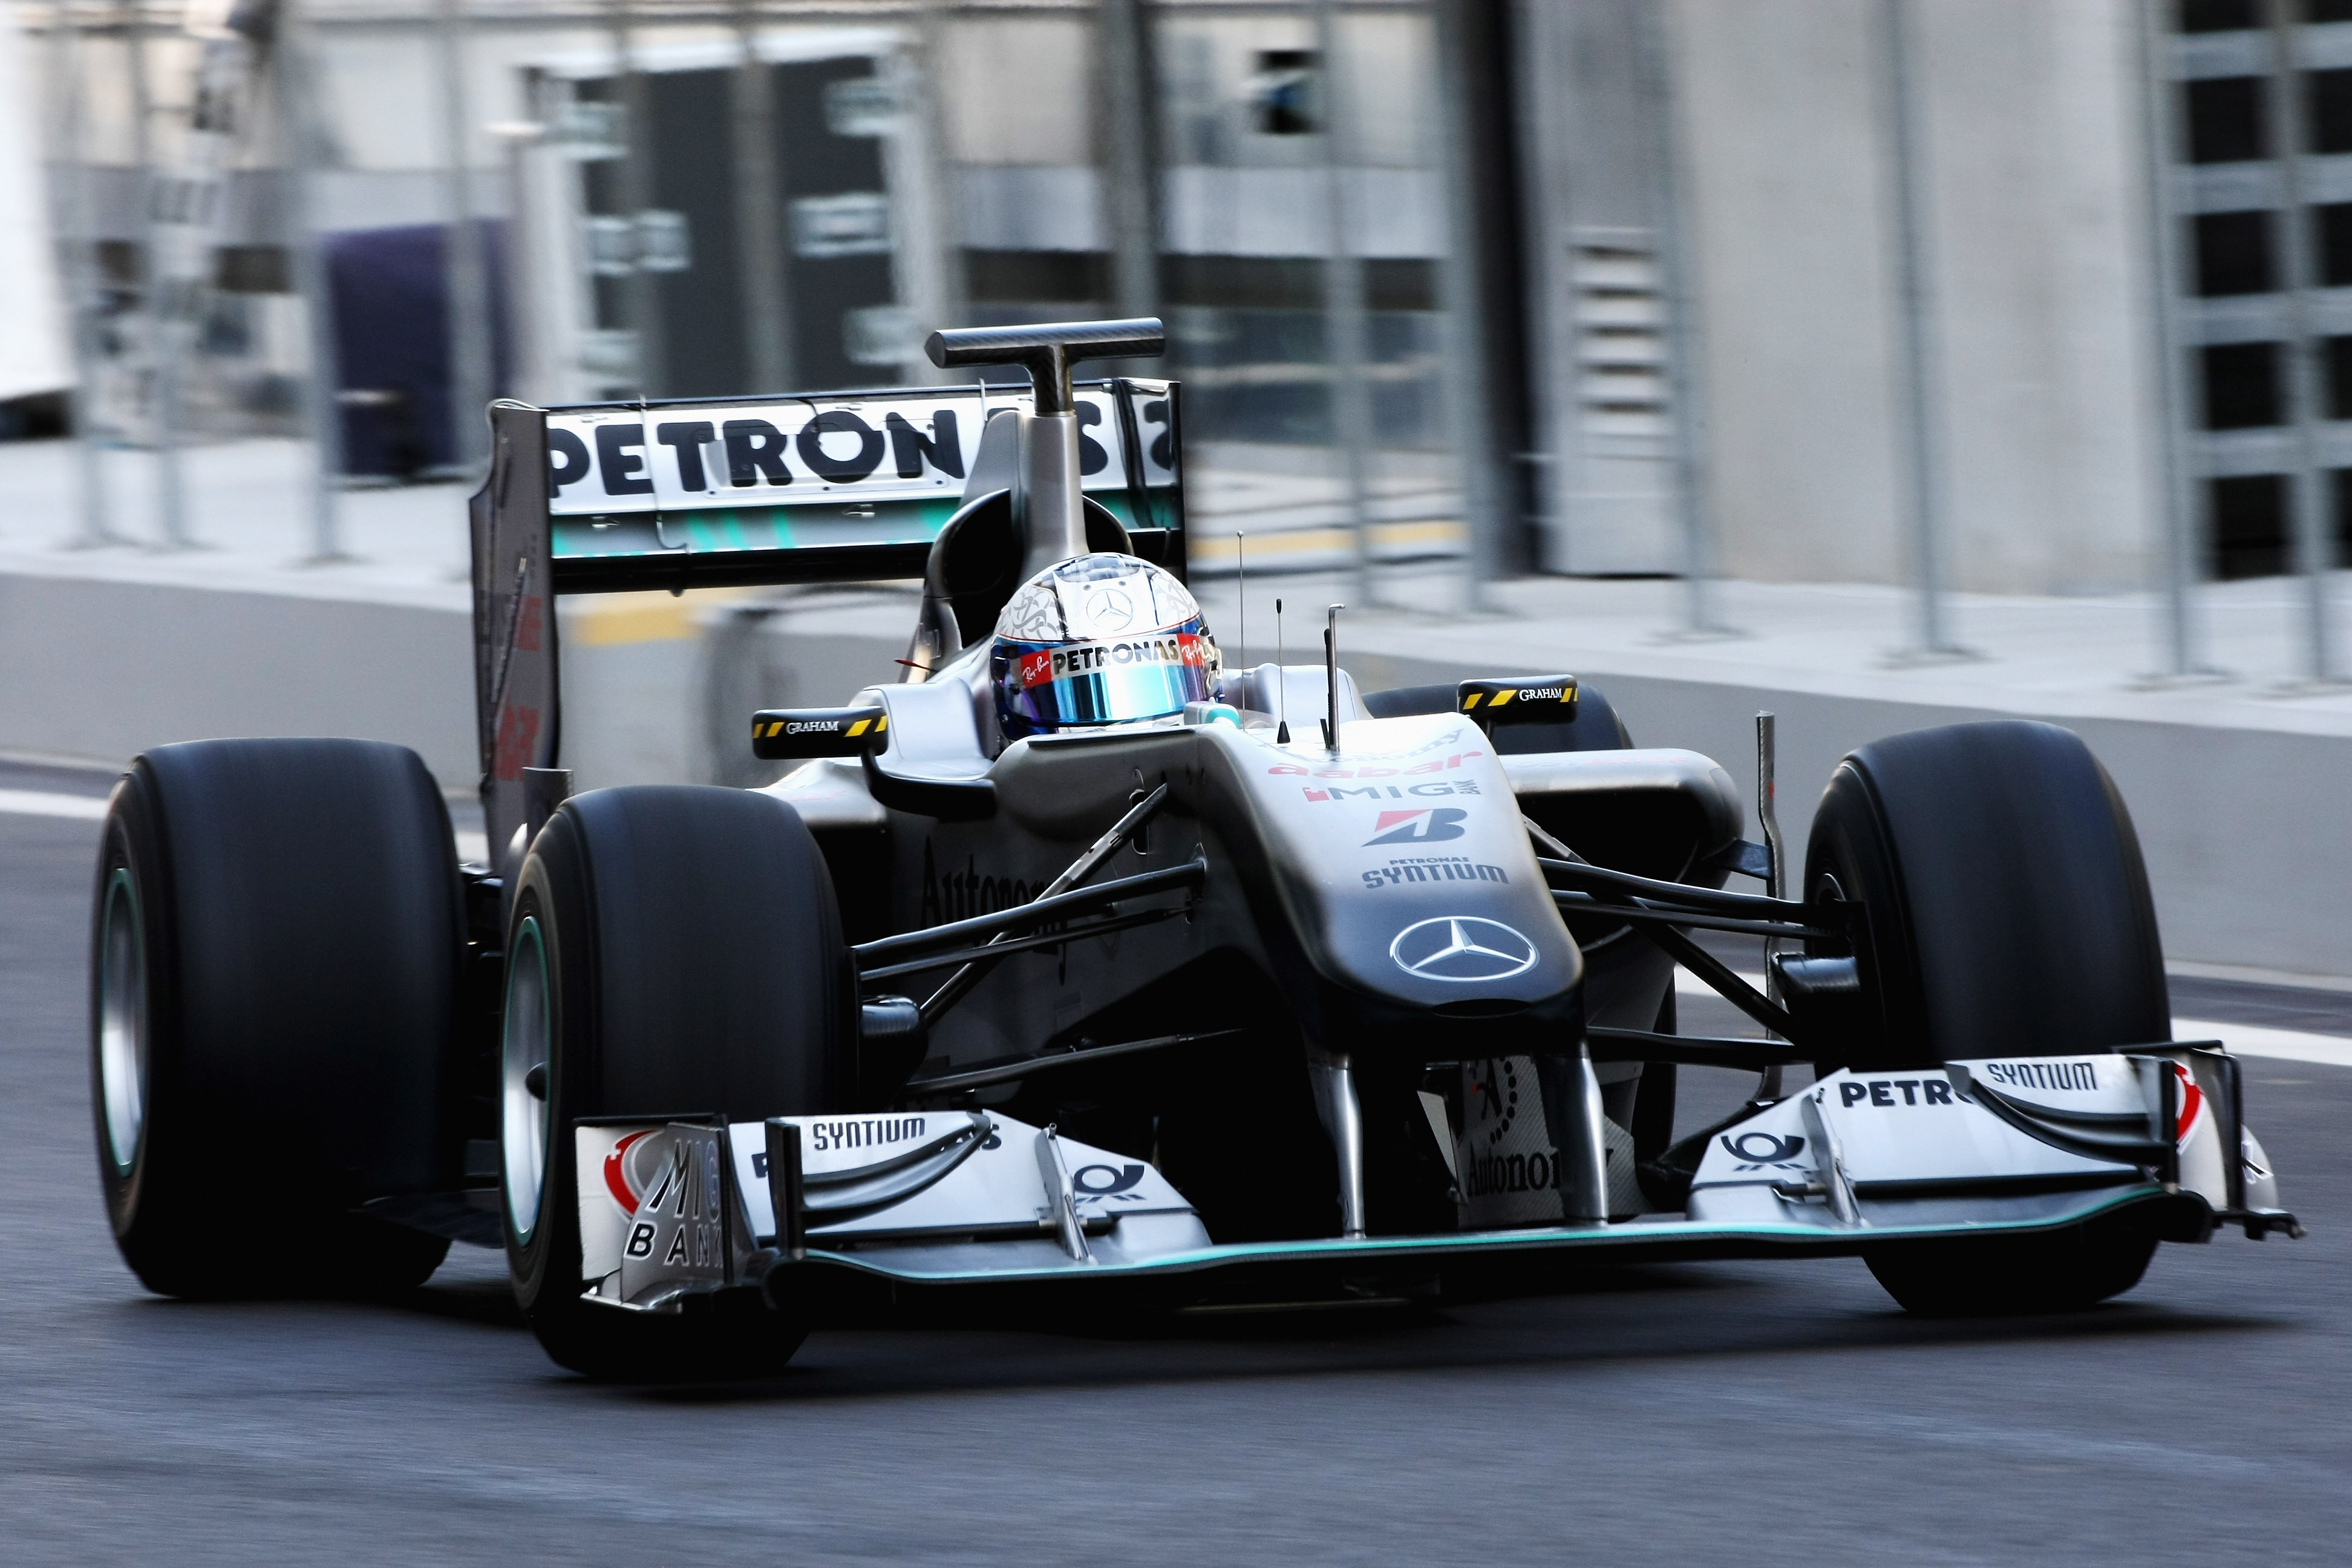 ABU DHABI, UNITED ARAB EMIRATES - NOVEMBER 16: Sam Bird of Great Britain and Mercedes GP F1 Team in action during the Young Driver Testing at the Yas Marina Circuit on November 16, 2010 in Abu Dhabi, United Arab Emirates. (Photo by Andrew Hone/Getty Image